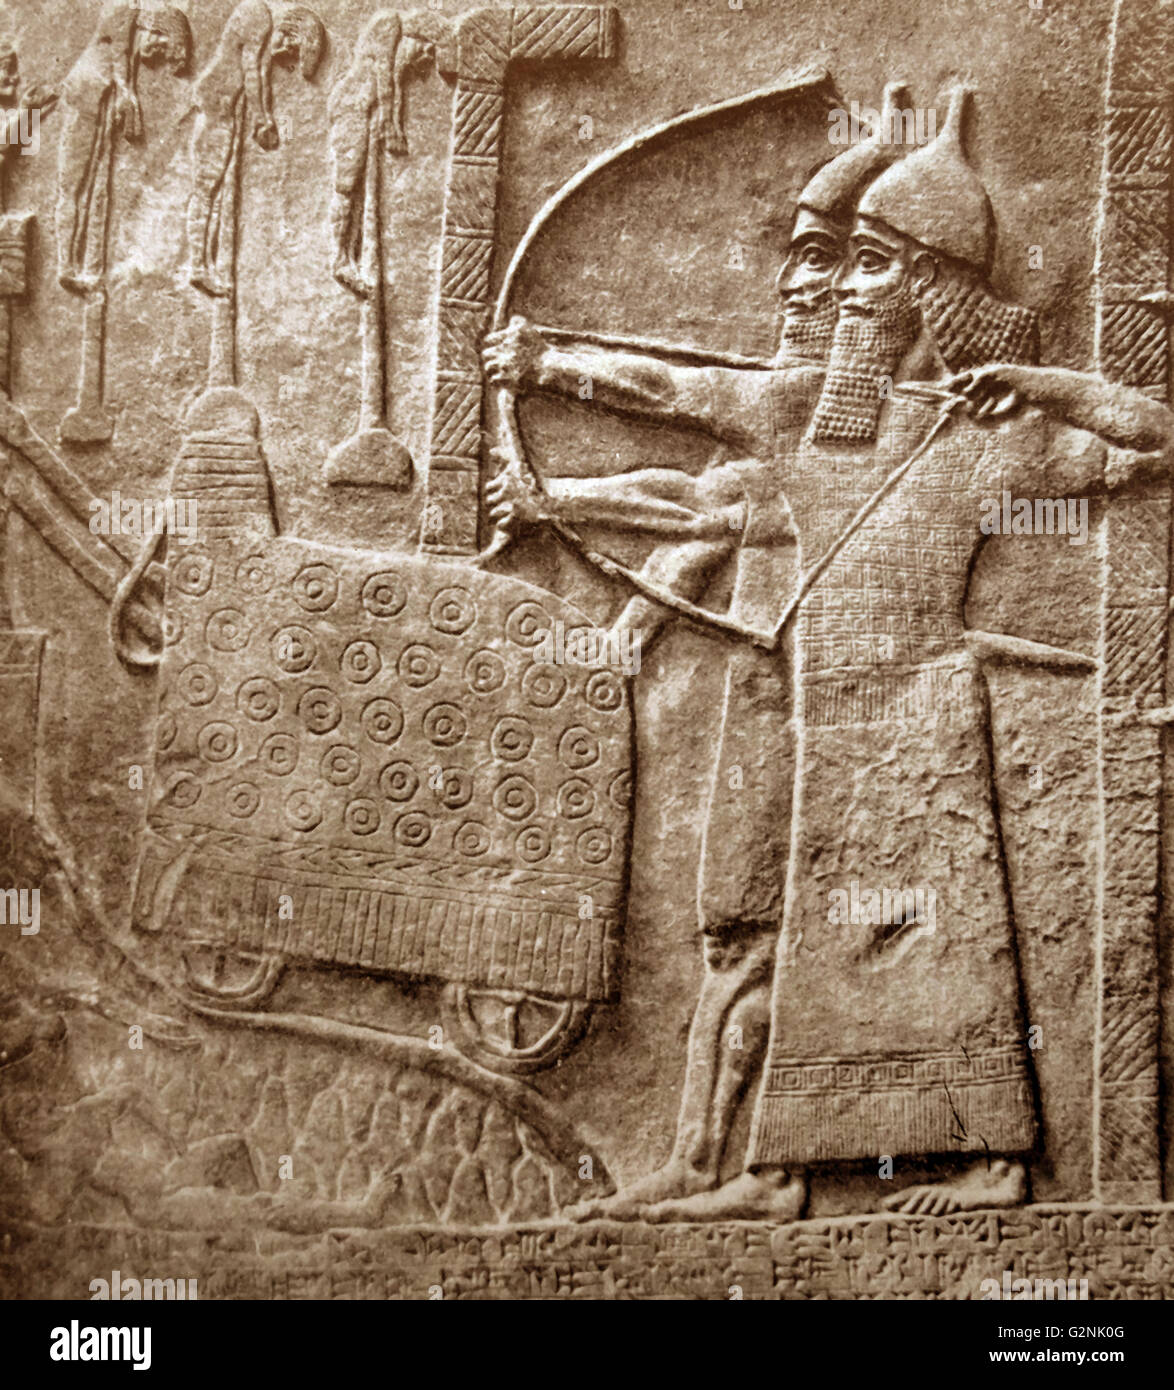 The Central Palace of Nimrud. - Stock Image